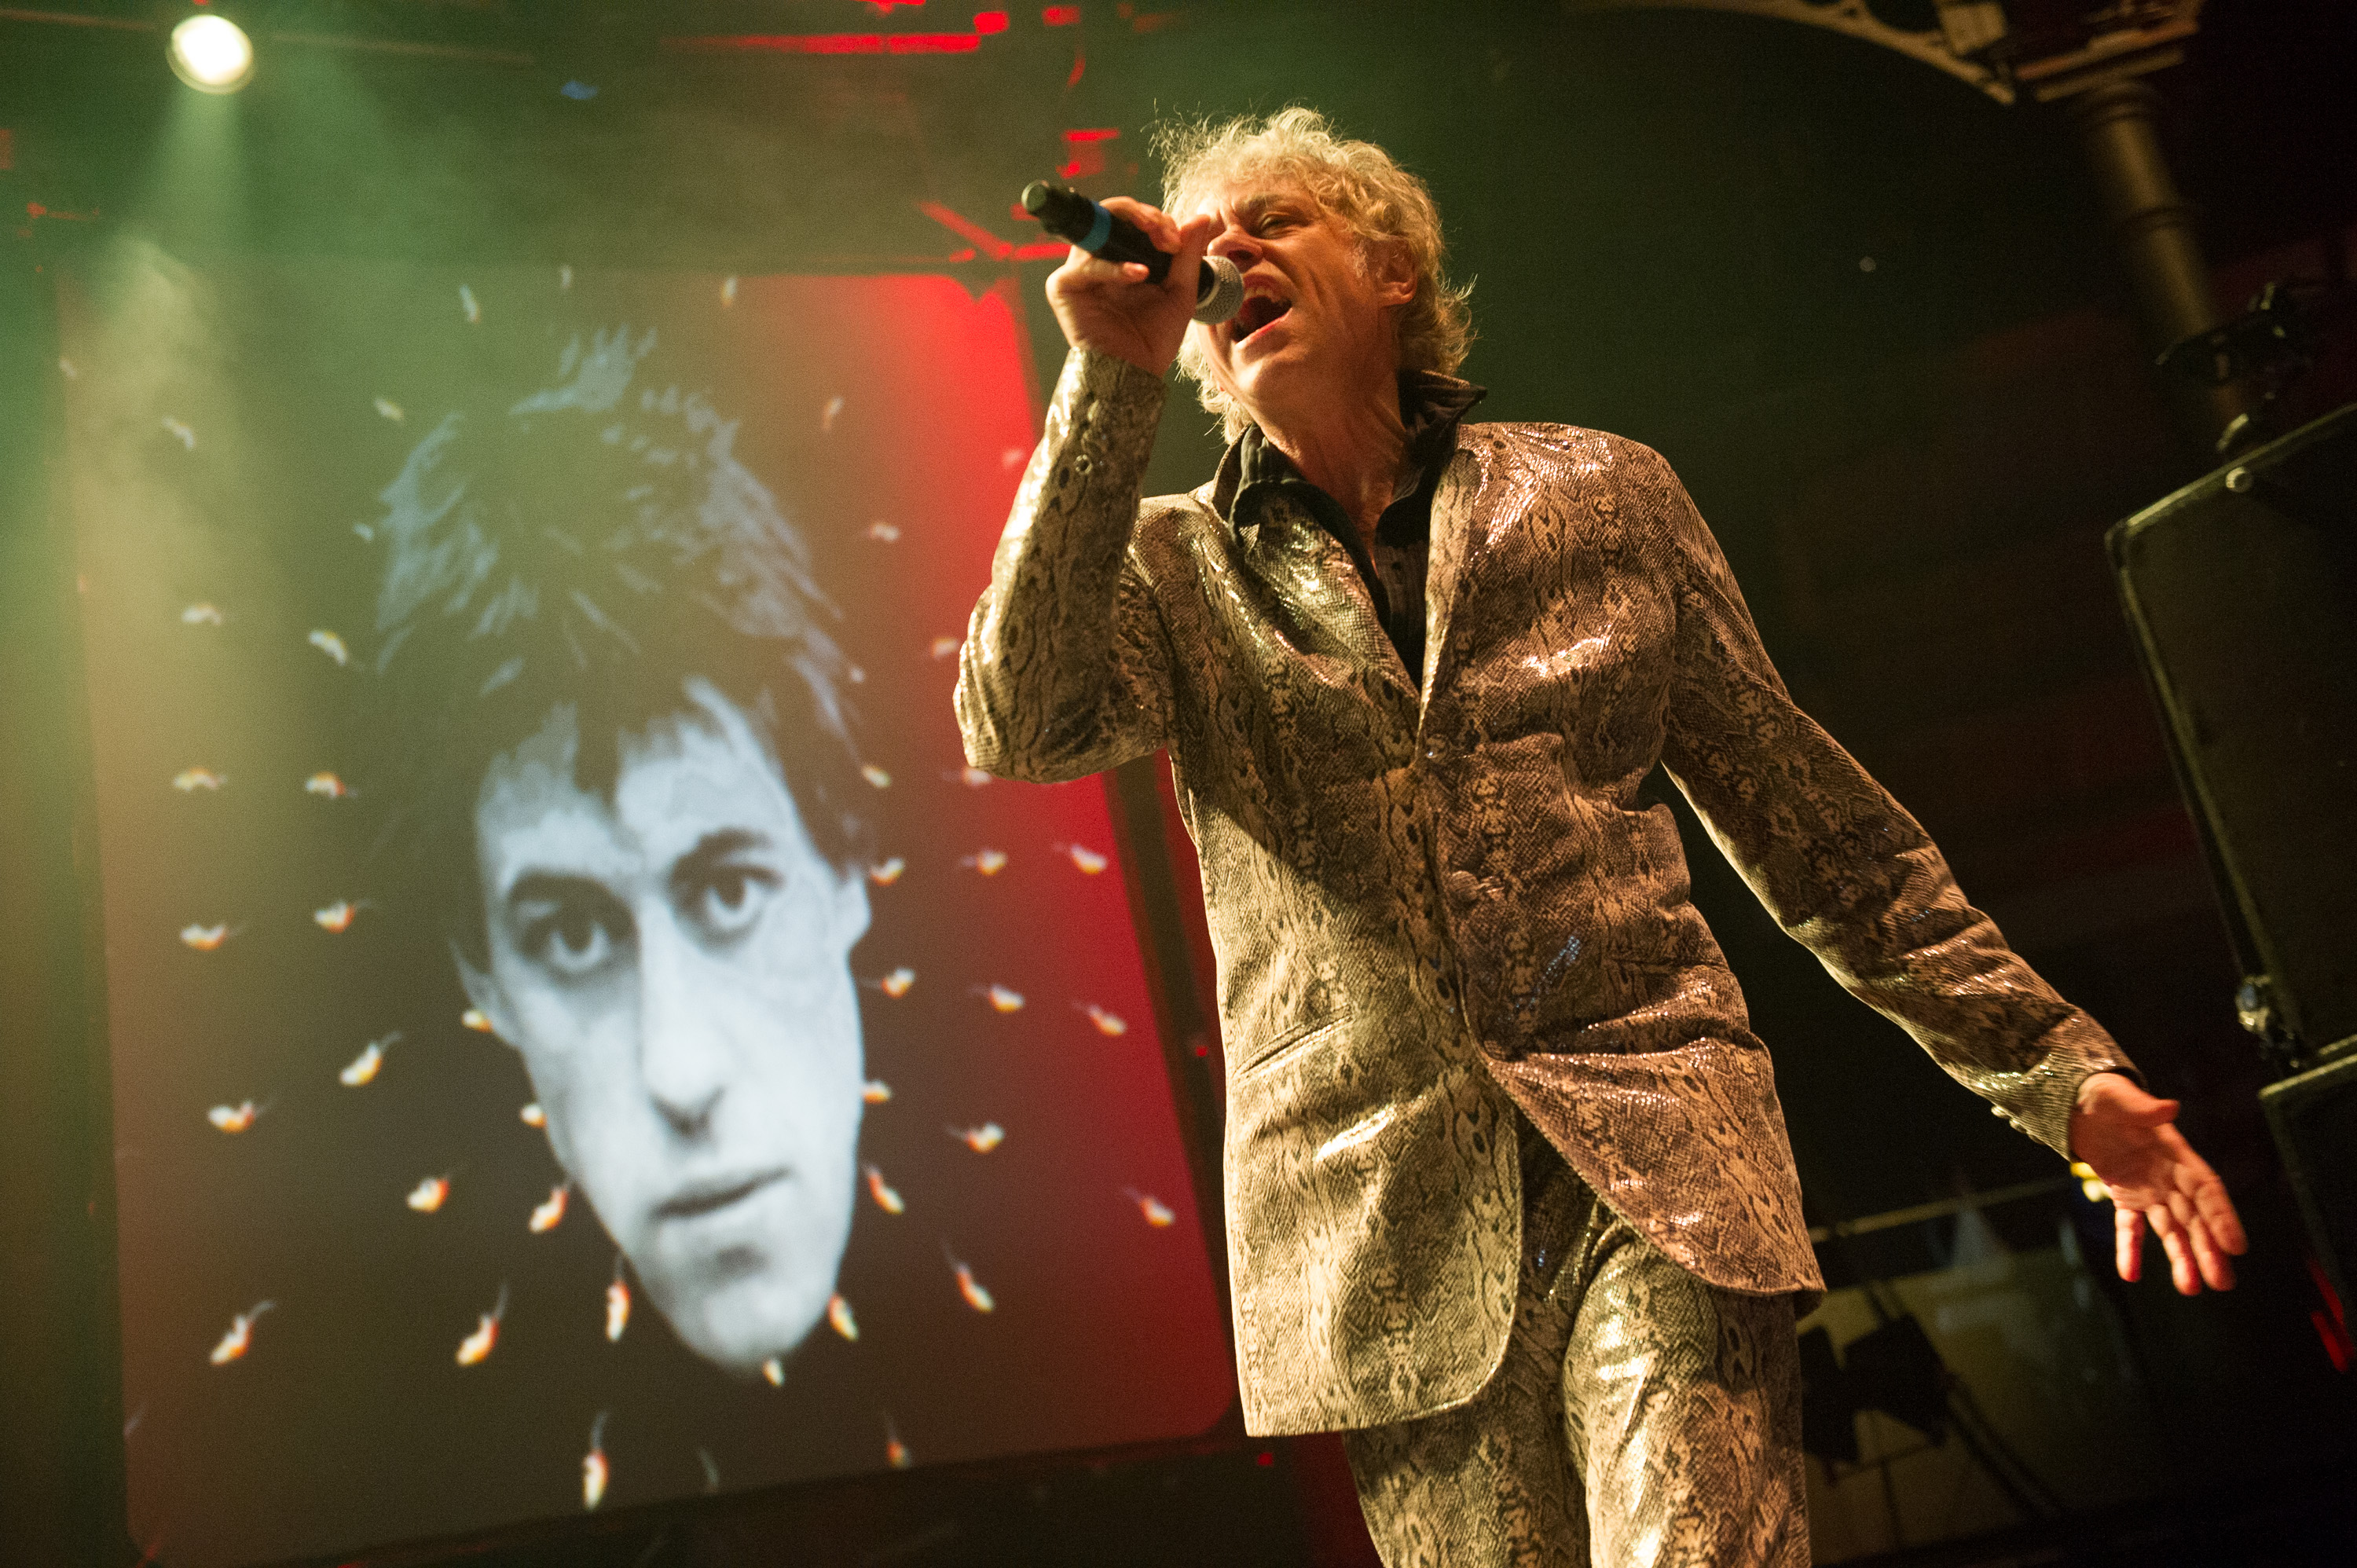 Irish New Wave band The Boomtown Rats perform at The Roundhouse, London, England, UK on 26th October 2013. The band consists